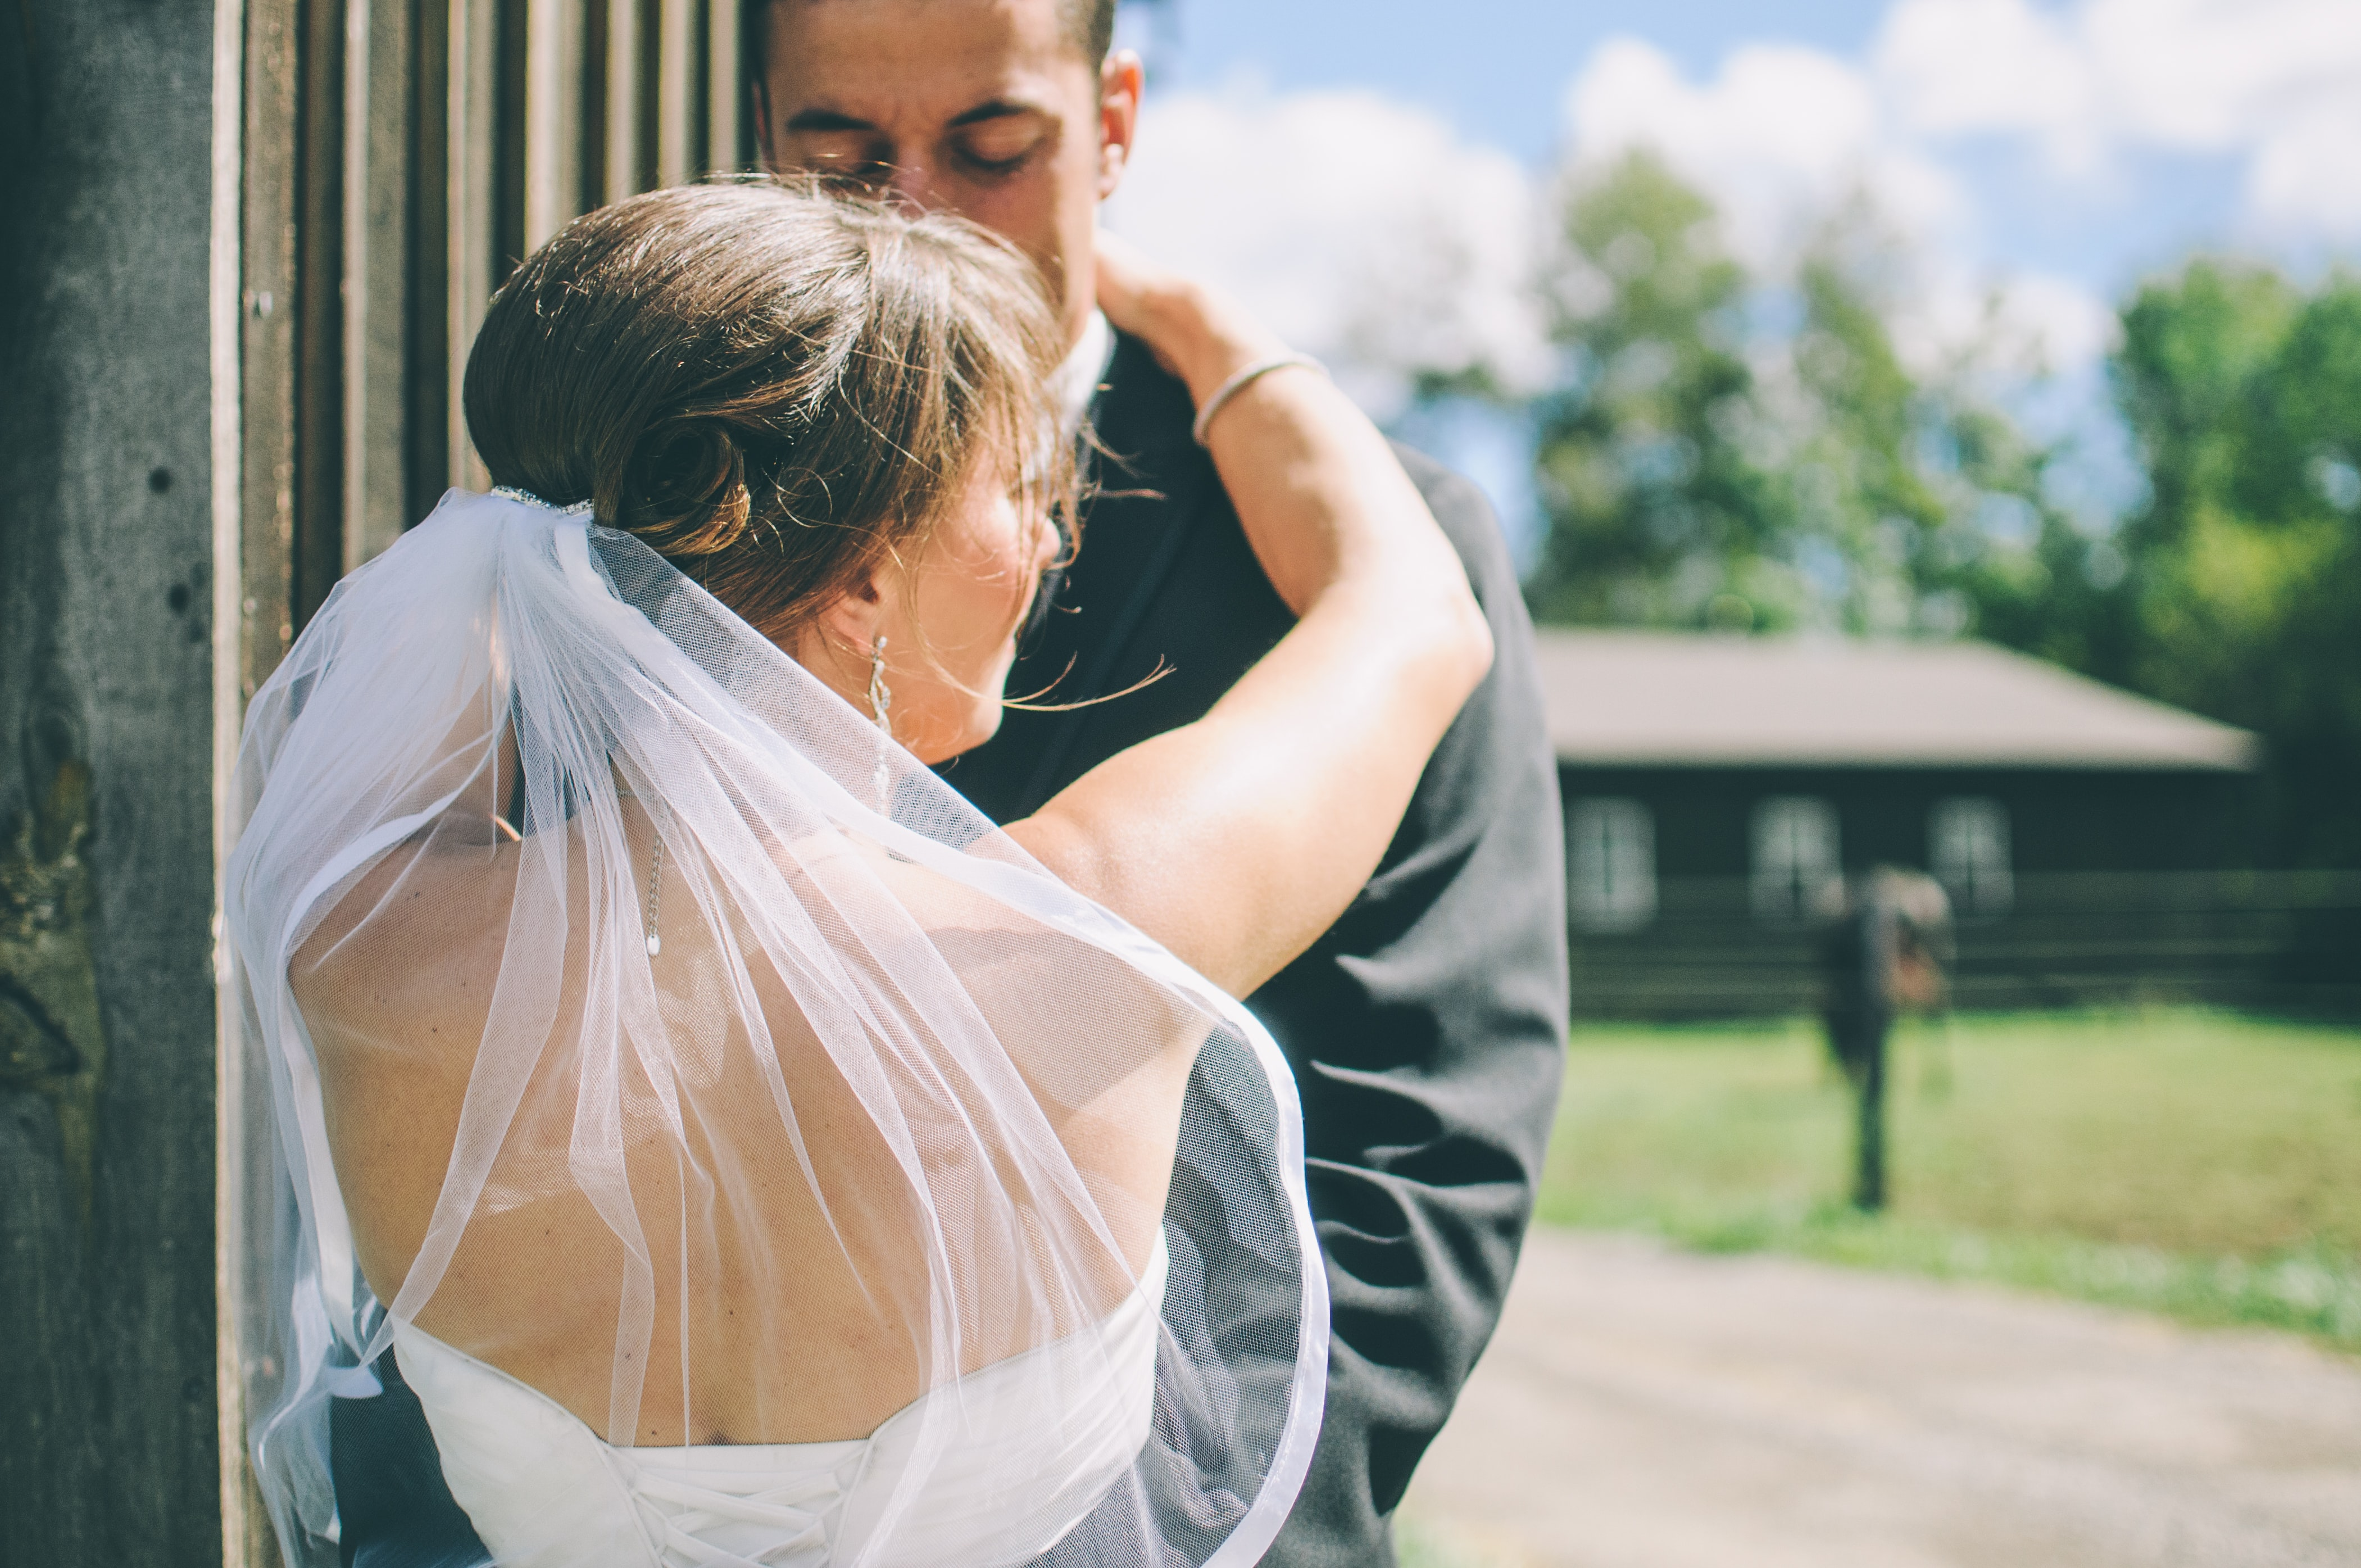 A bride and groom embrace outdoors on a sunny day in London